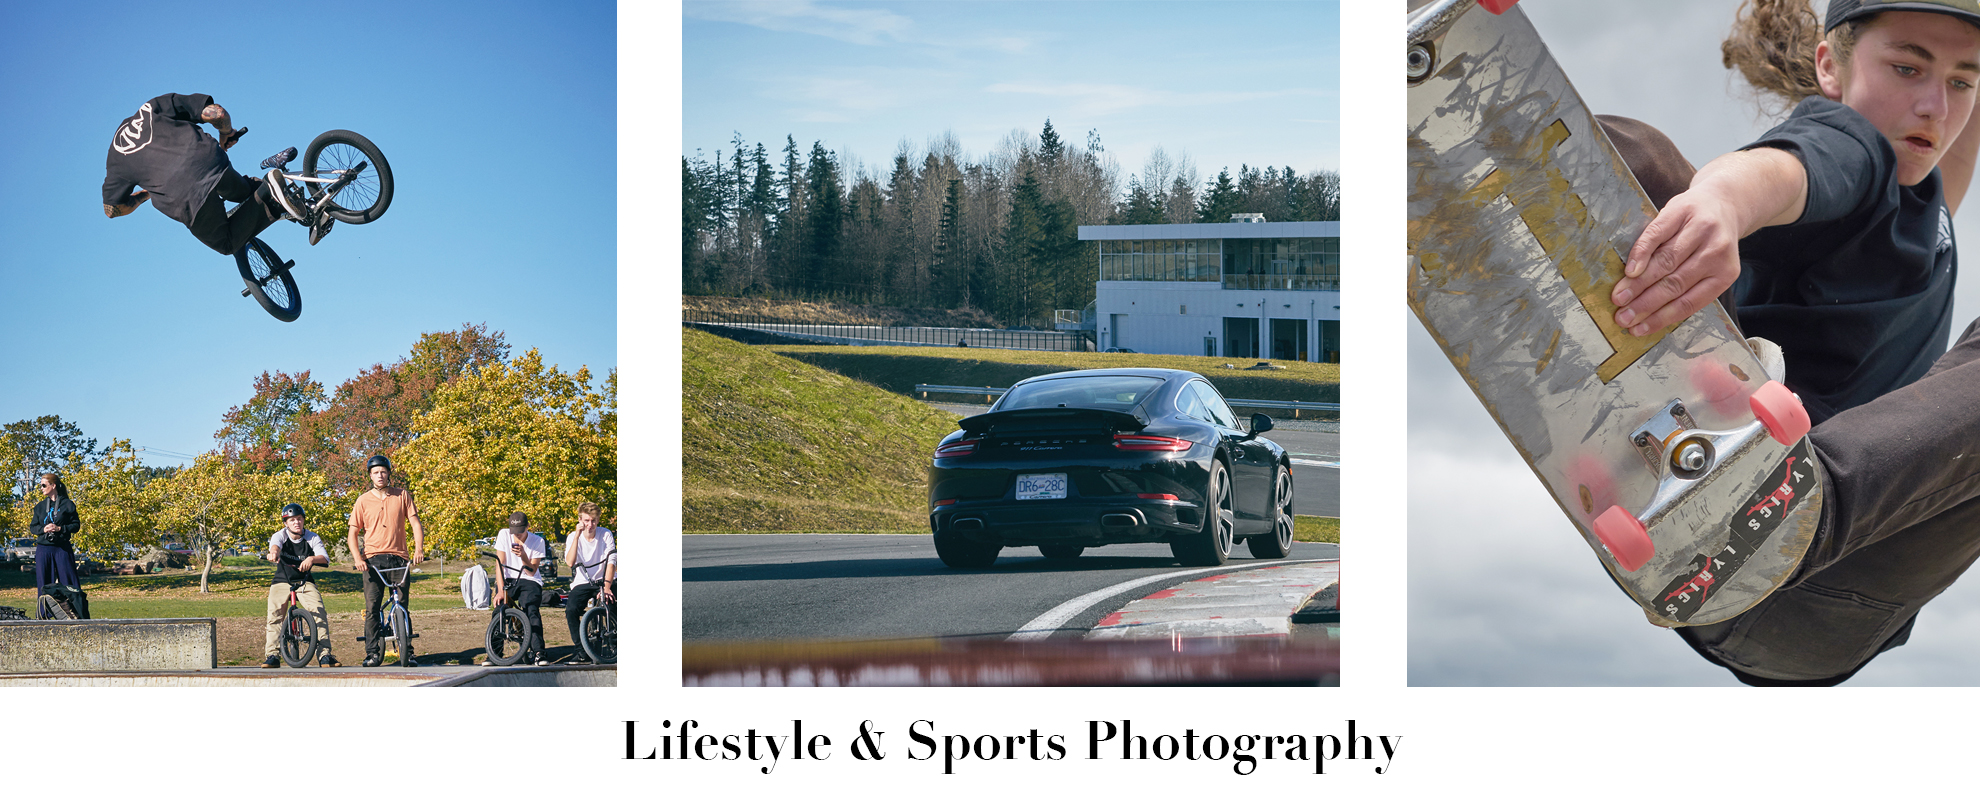 Lifestyle & Sports Photography